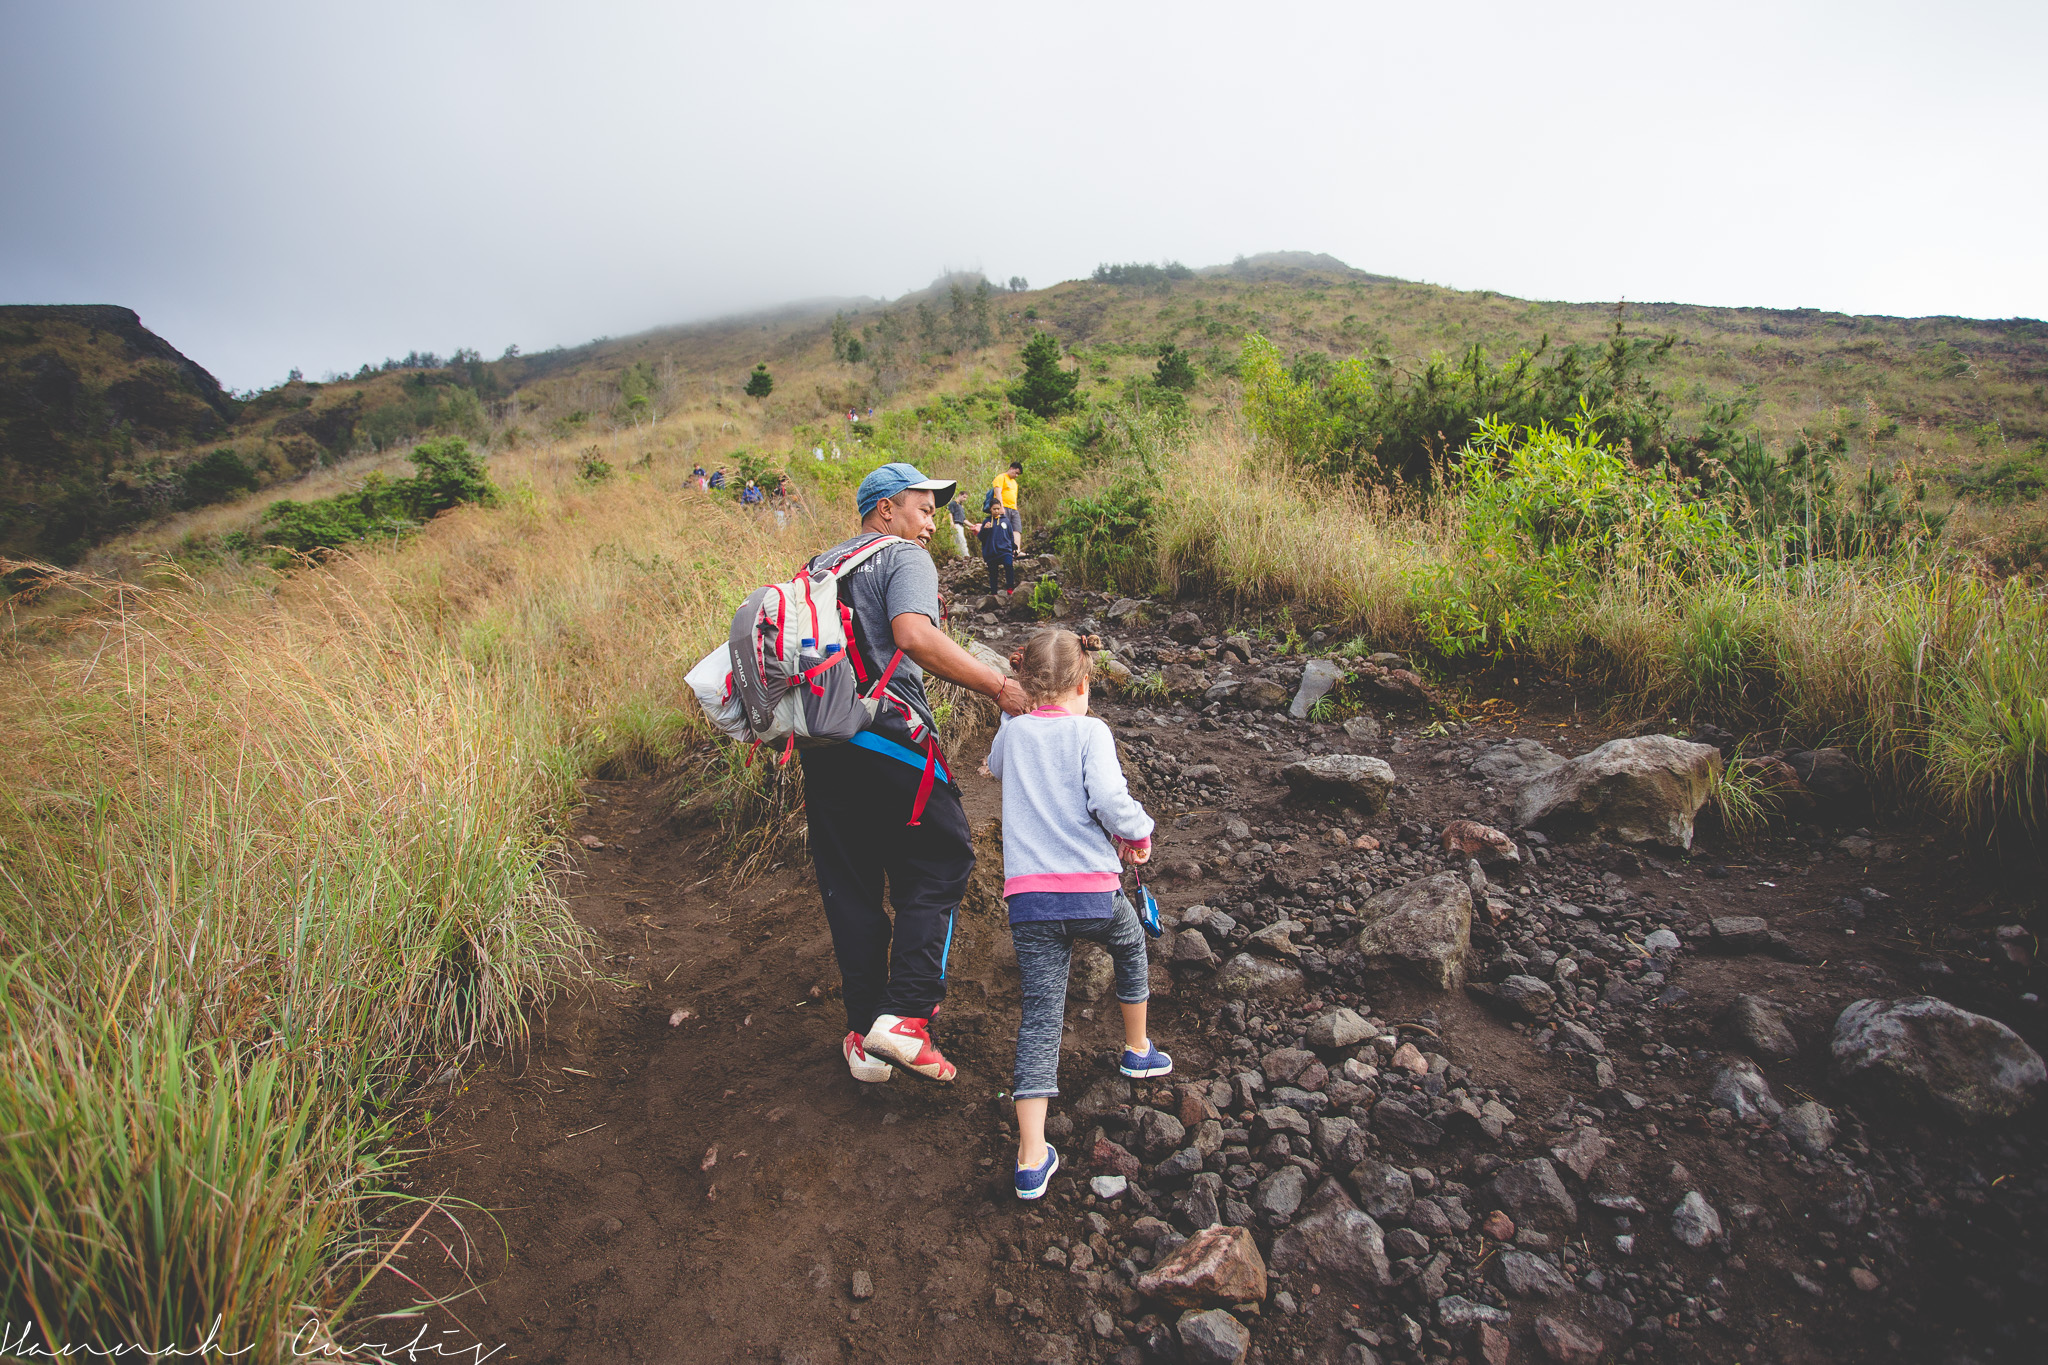 Climbing Mt Batur, Bali | Indonesia [with kids]